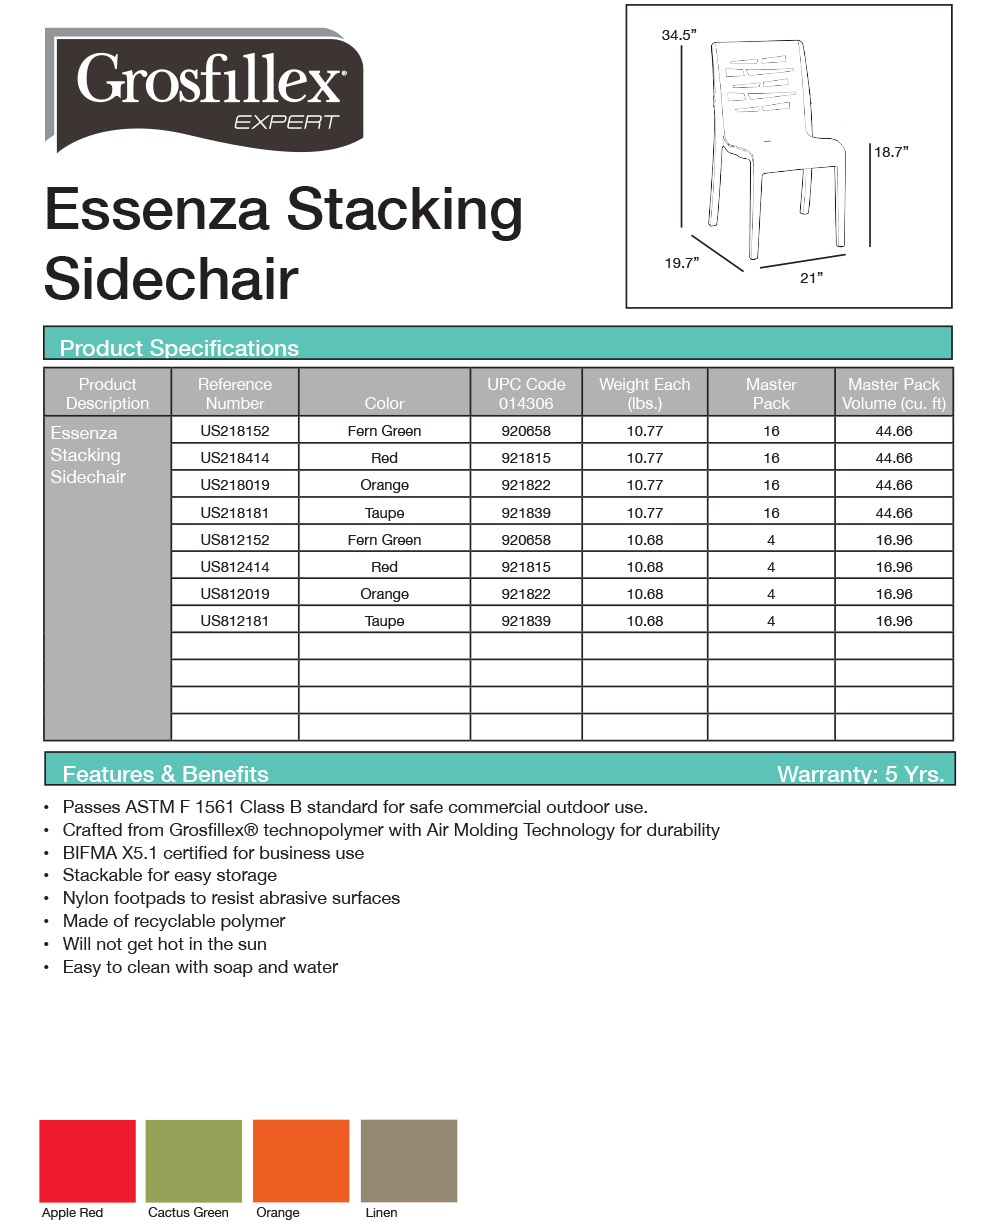 Grosfillex Essenza Sidechair